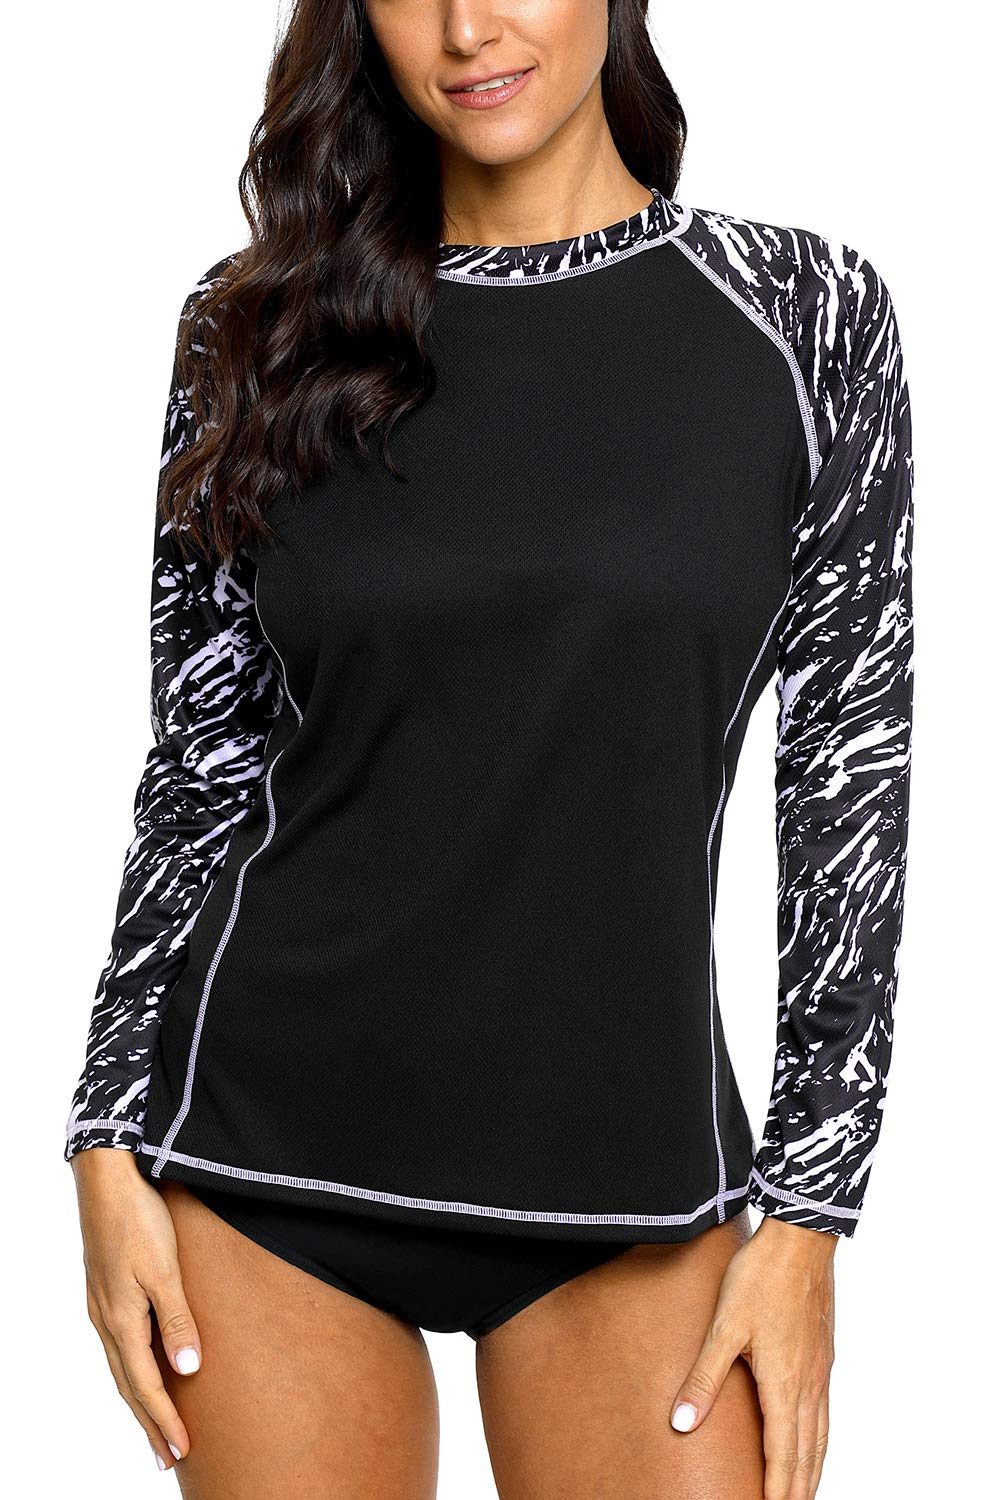 CharmLeaks Rash Guard Women Swim Shirts Long Sleeve SPF Shirts Ladies Swimwear Tops M by CharmLeaks